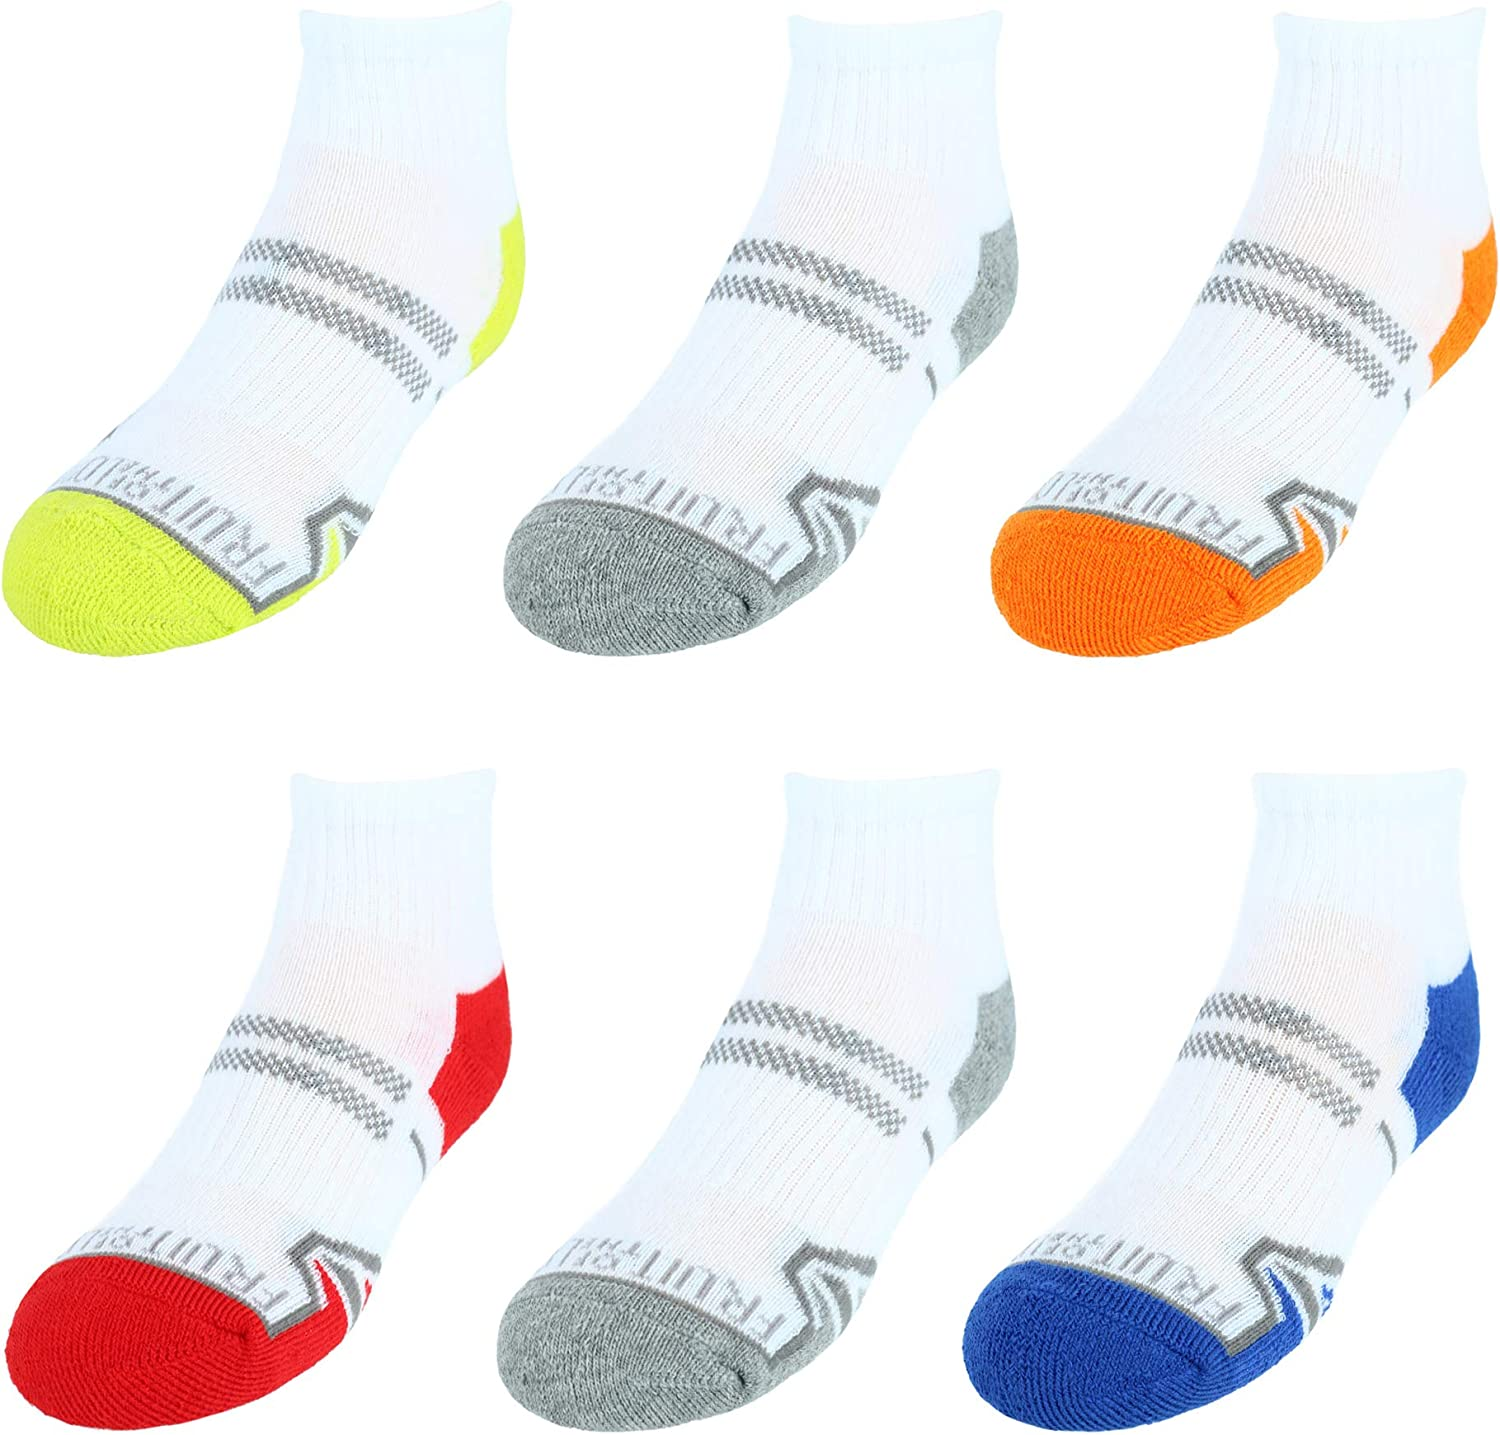 Fruit of the Loom Boy's Active Ankle Socks (6 Pair Pack)